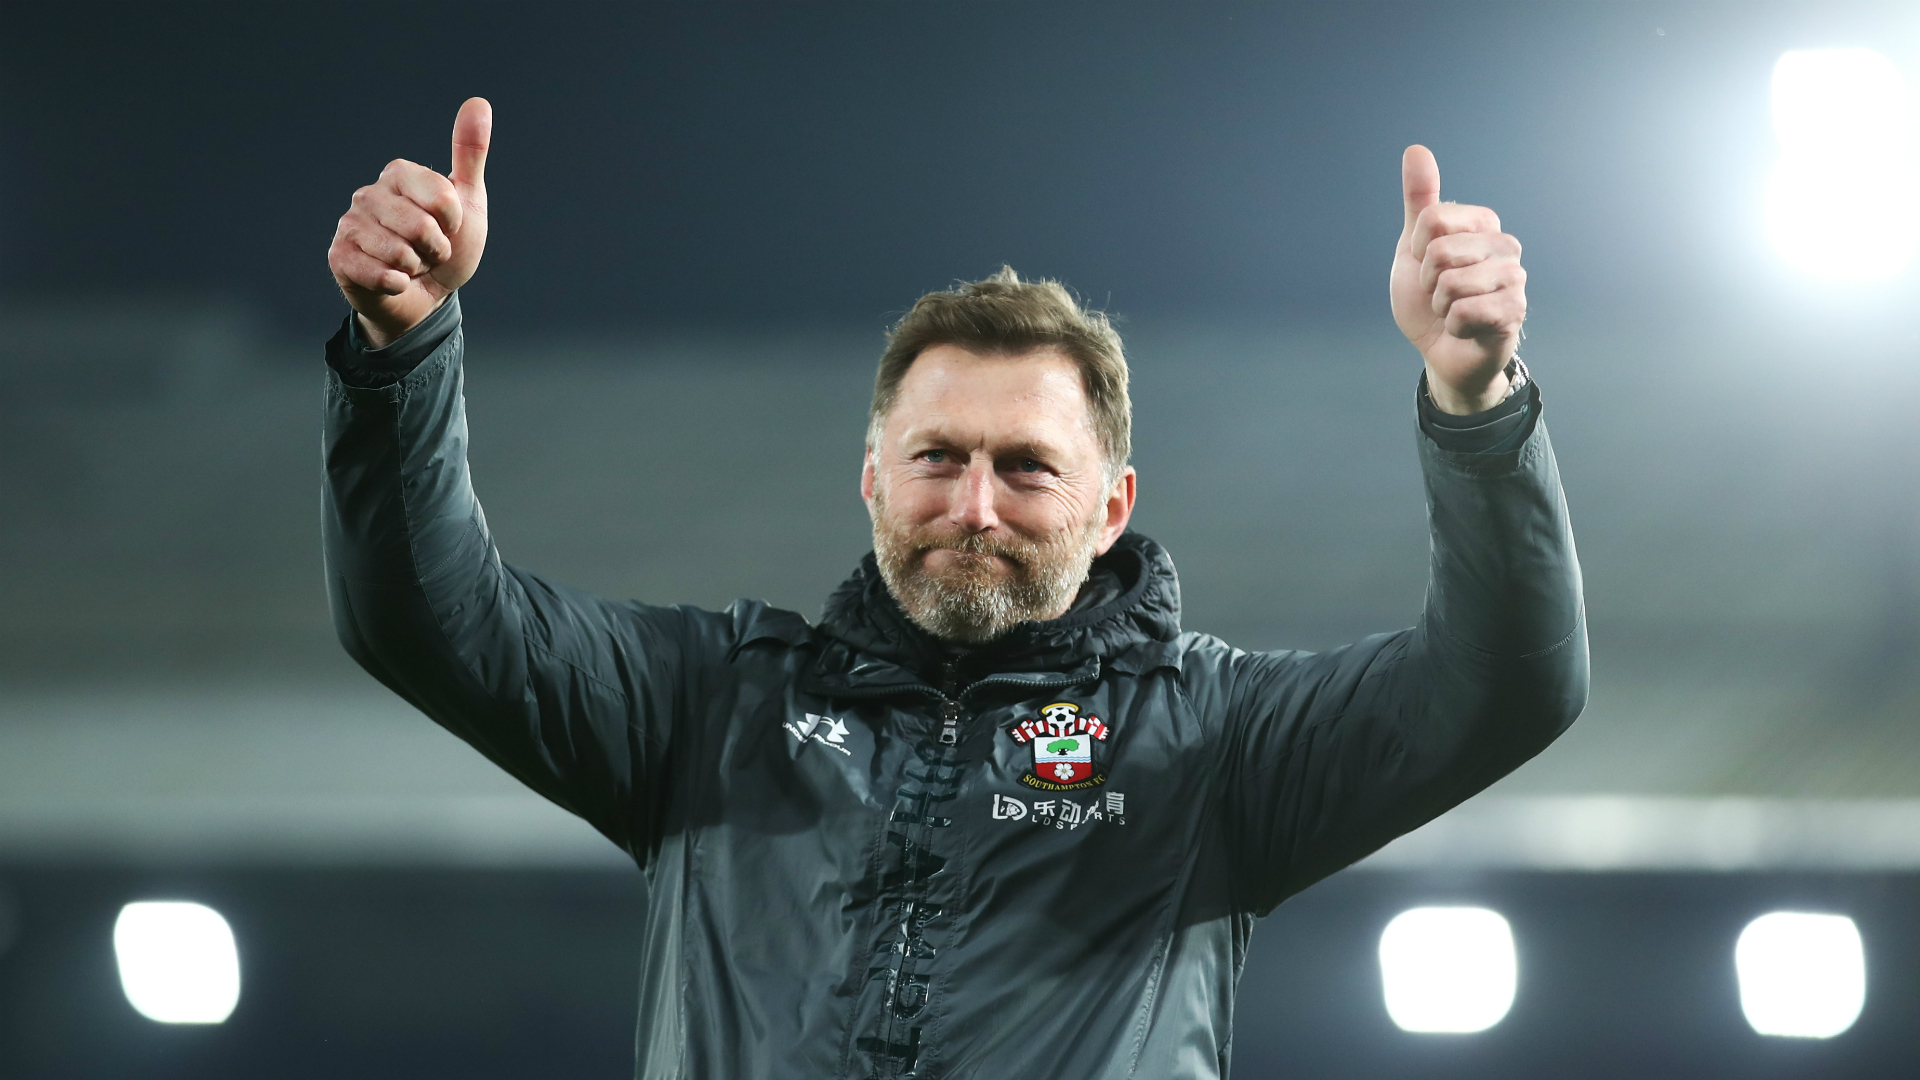 Saints boss Hasenhuttl cleared to end self-isolation after extensive COVID-19 testing